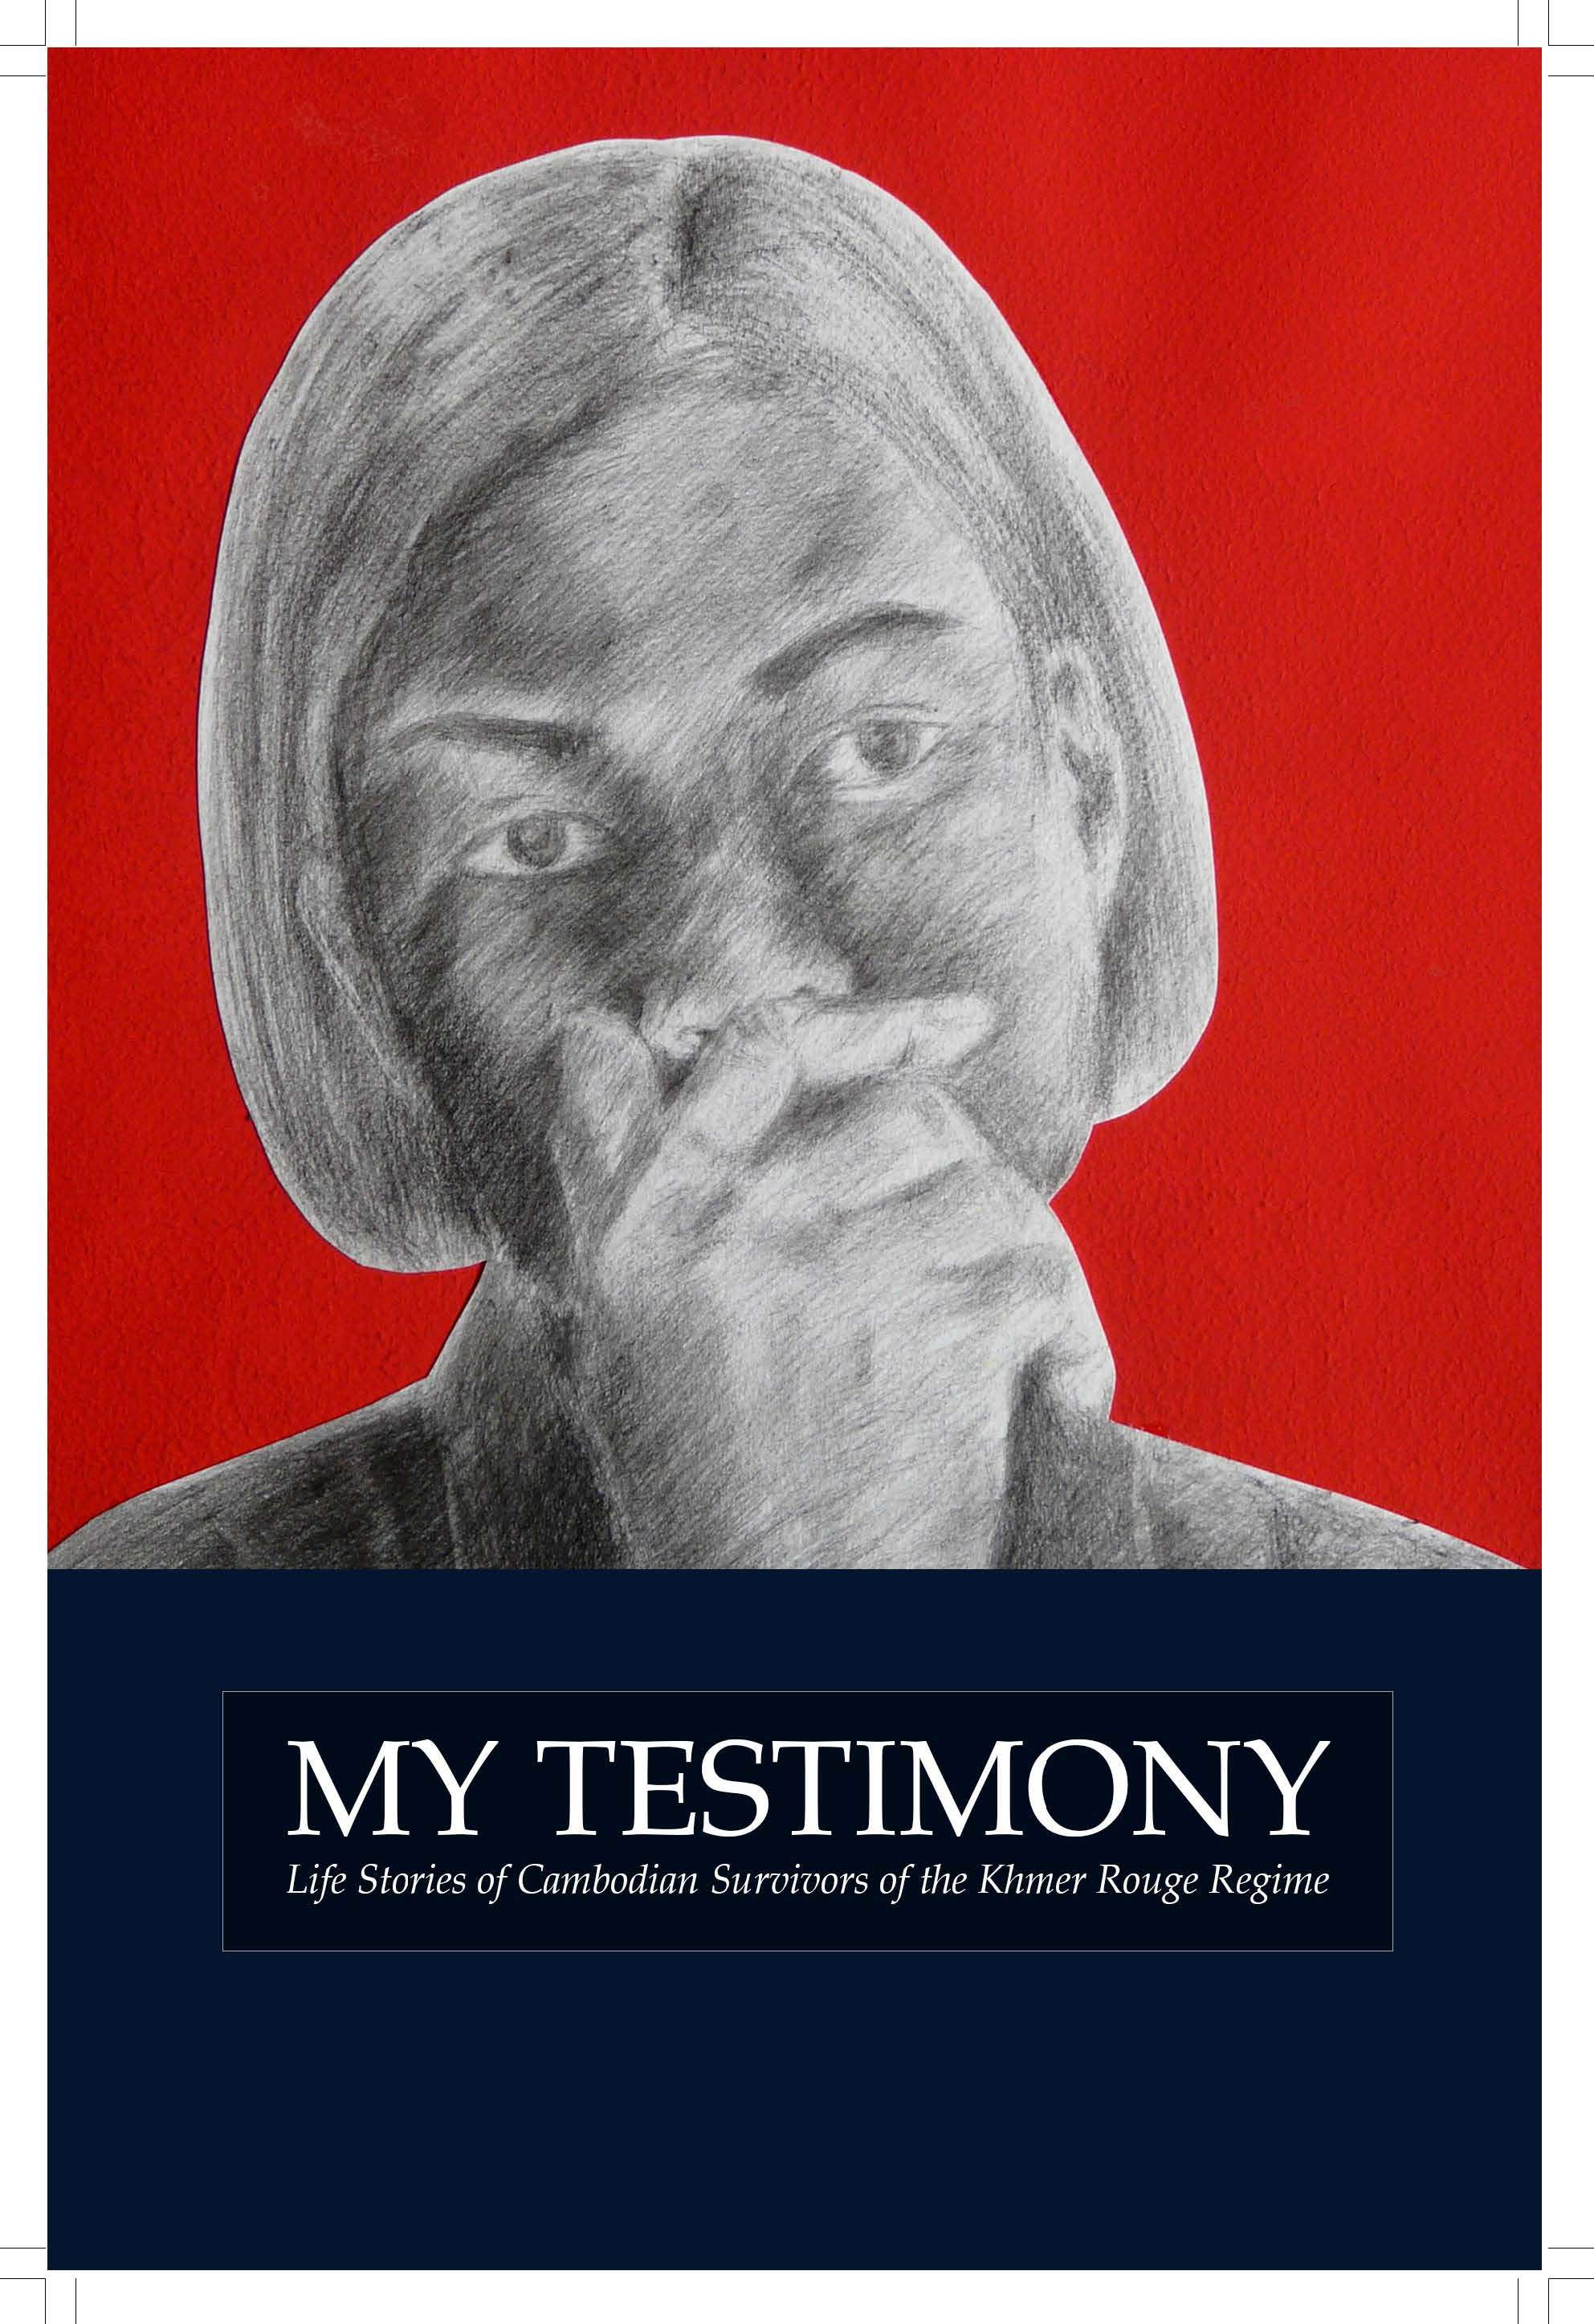 My Testimony – published (2015)